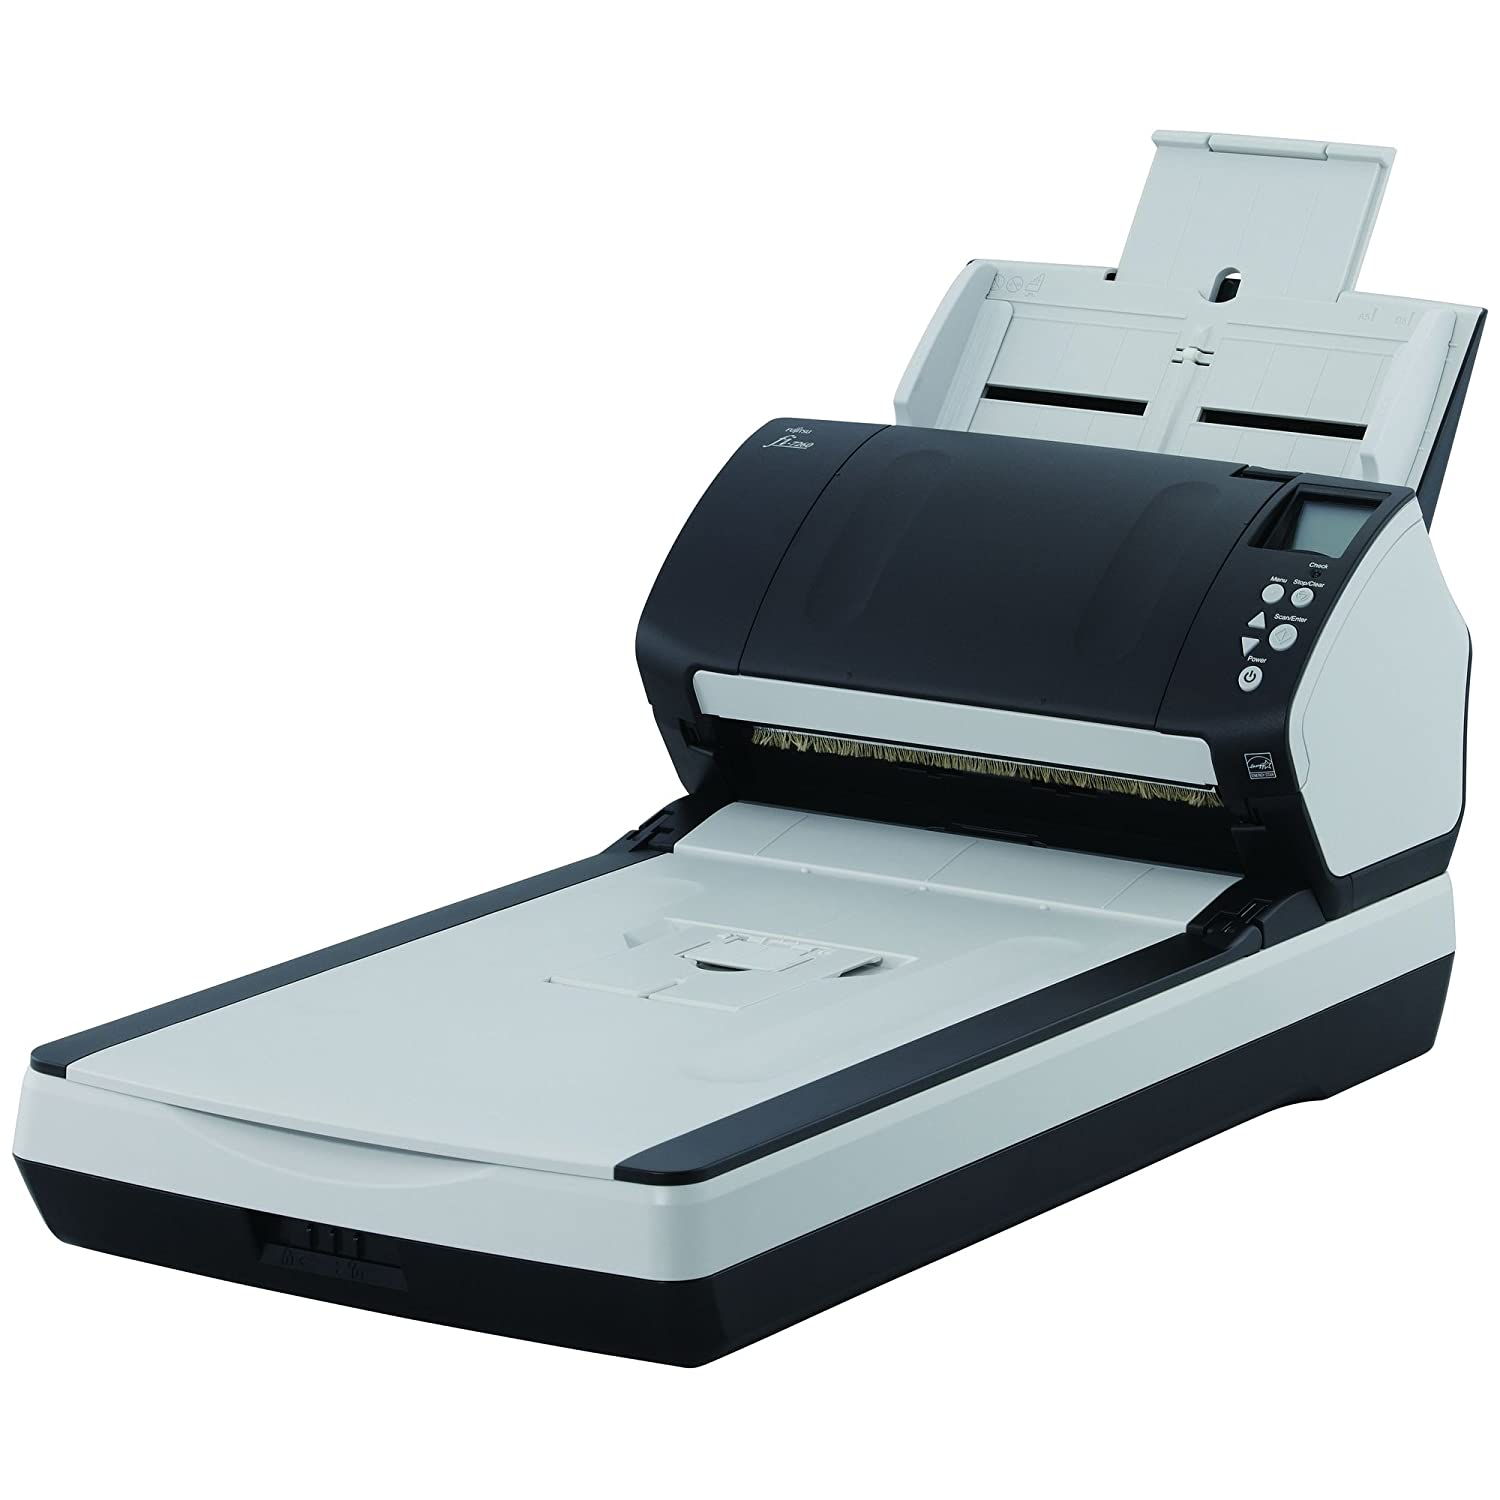 FUJITSU i-7260 Sheetfed/Flatbed Scanner / 24-bit Color - 8-bit Grayscale - USB / PA03670-B555 /